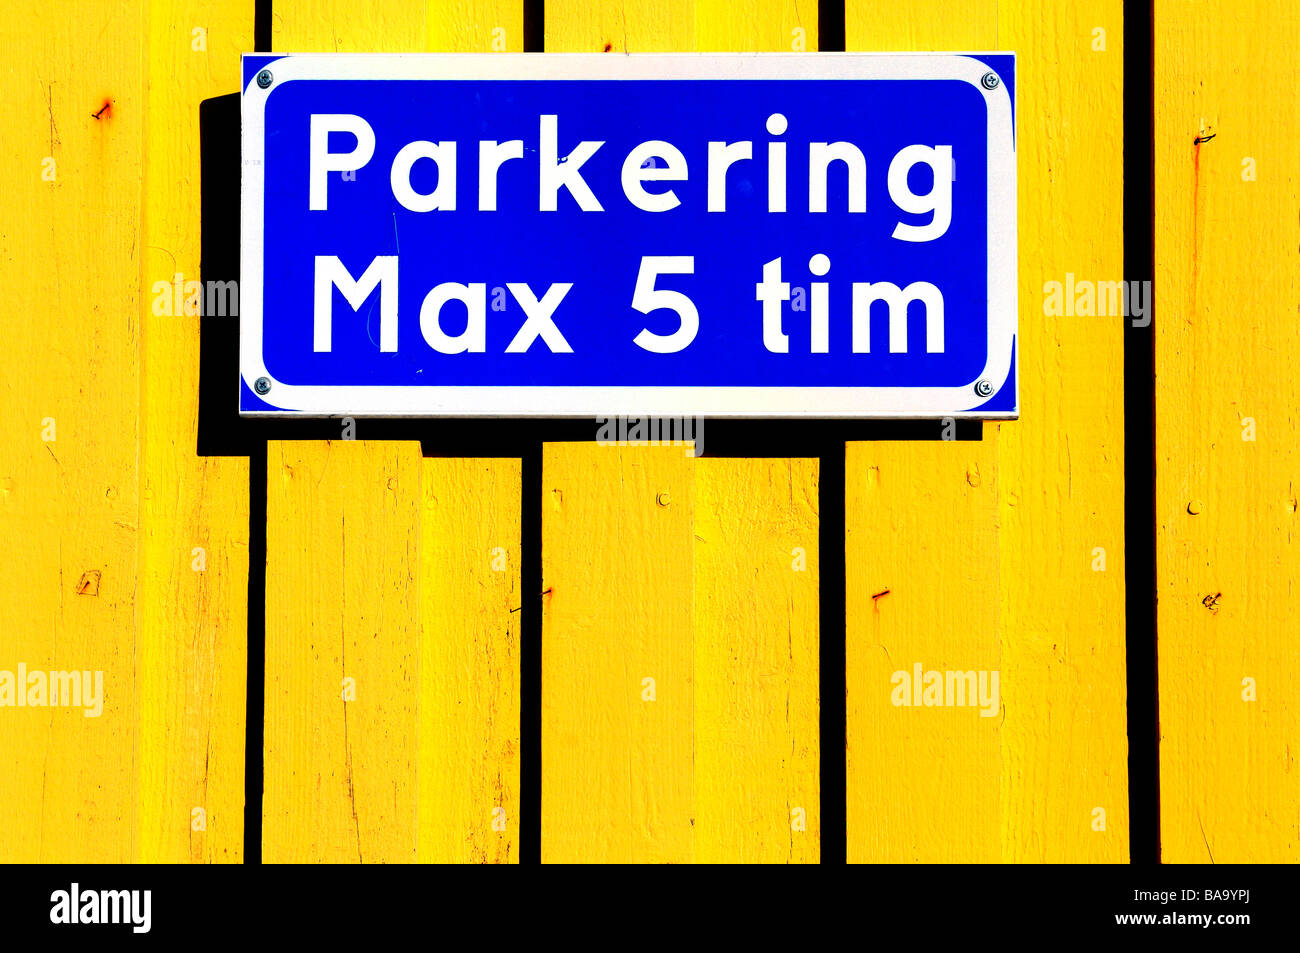 A parking sign on a yellow wall. Sweden - Stock Image